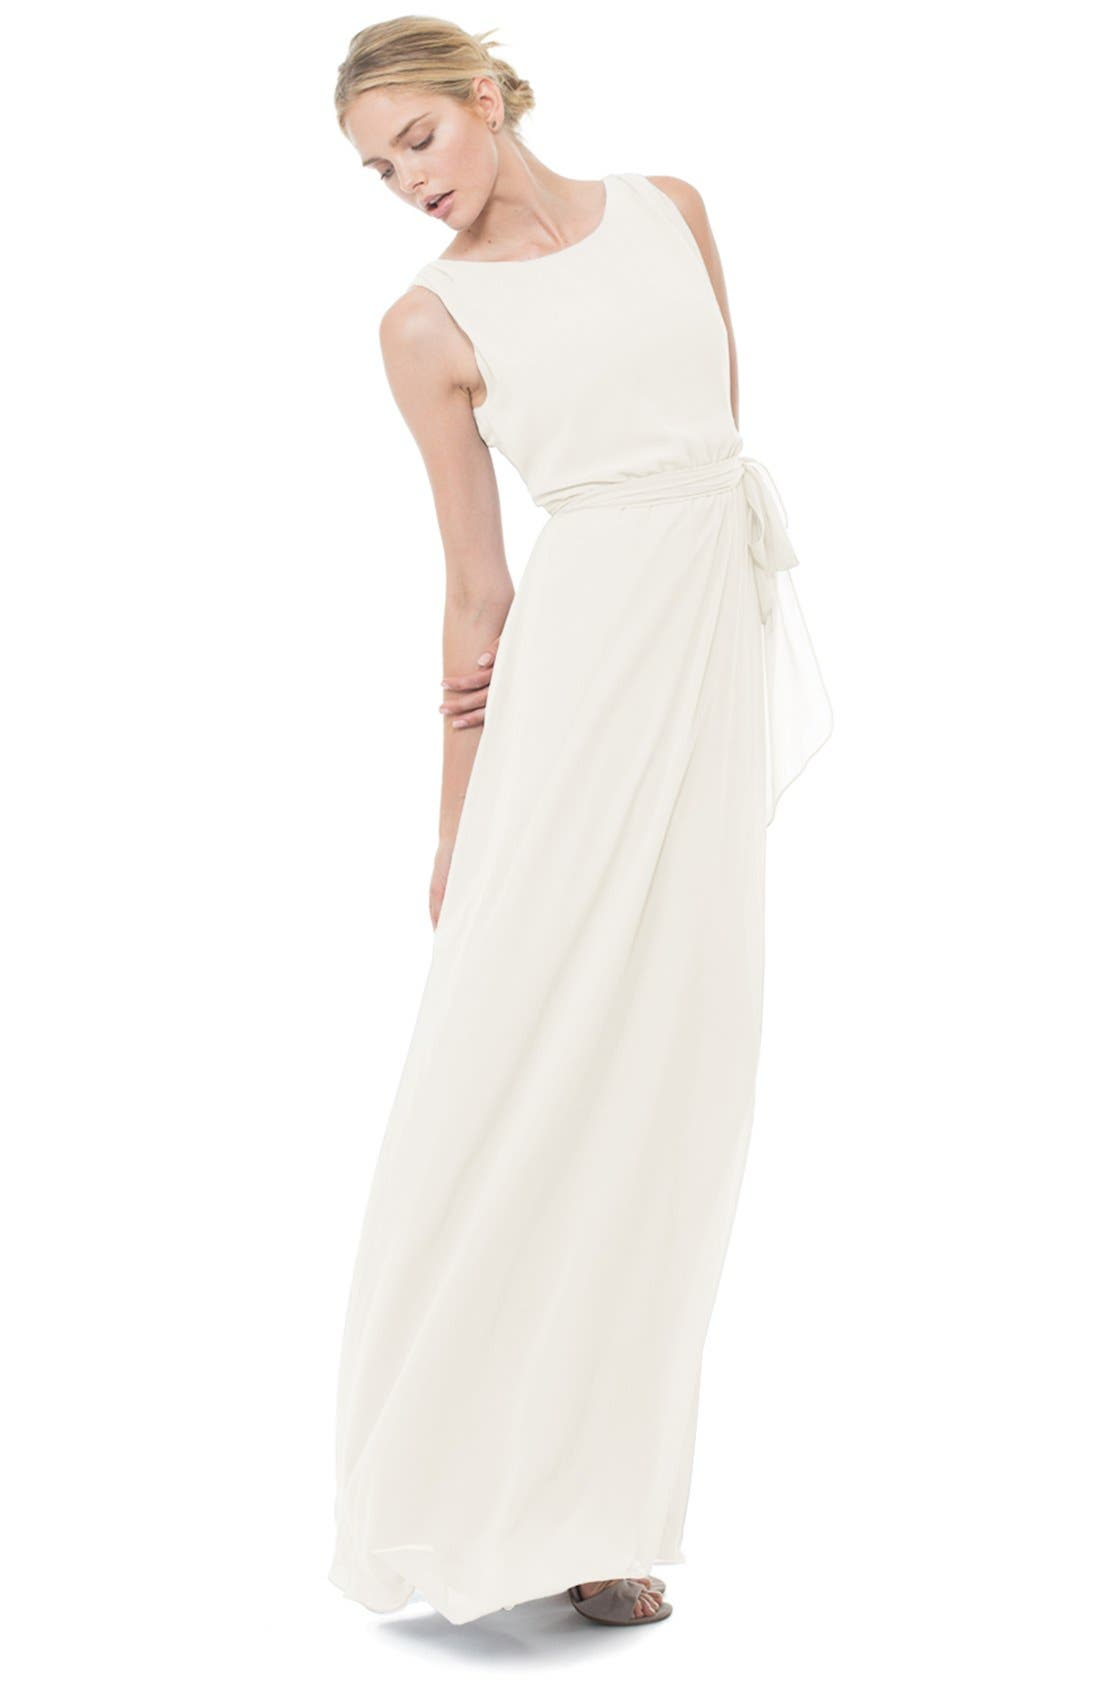 CEREMONY BY JOANNA AUGUST 'Tina' Tie Back Chiffon